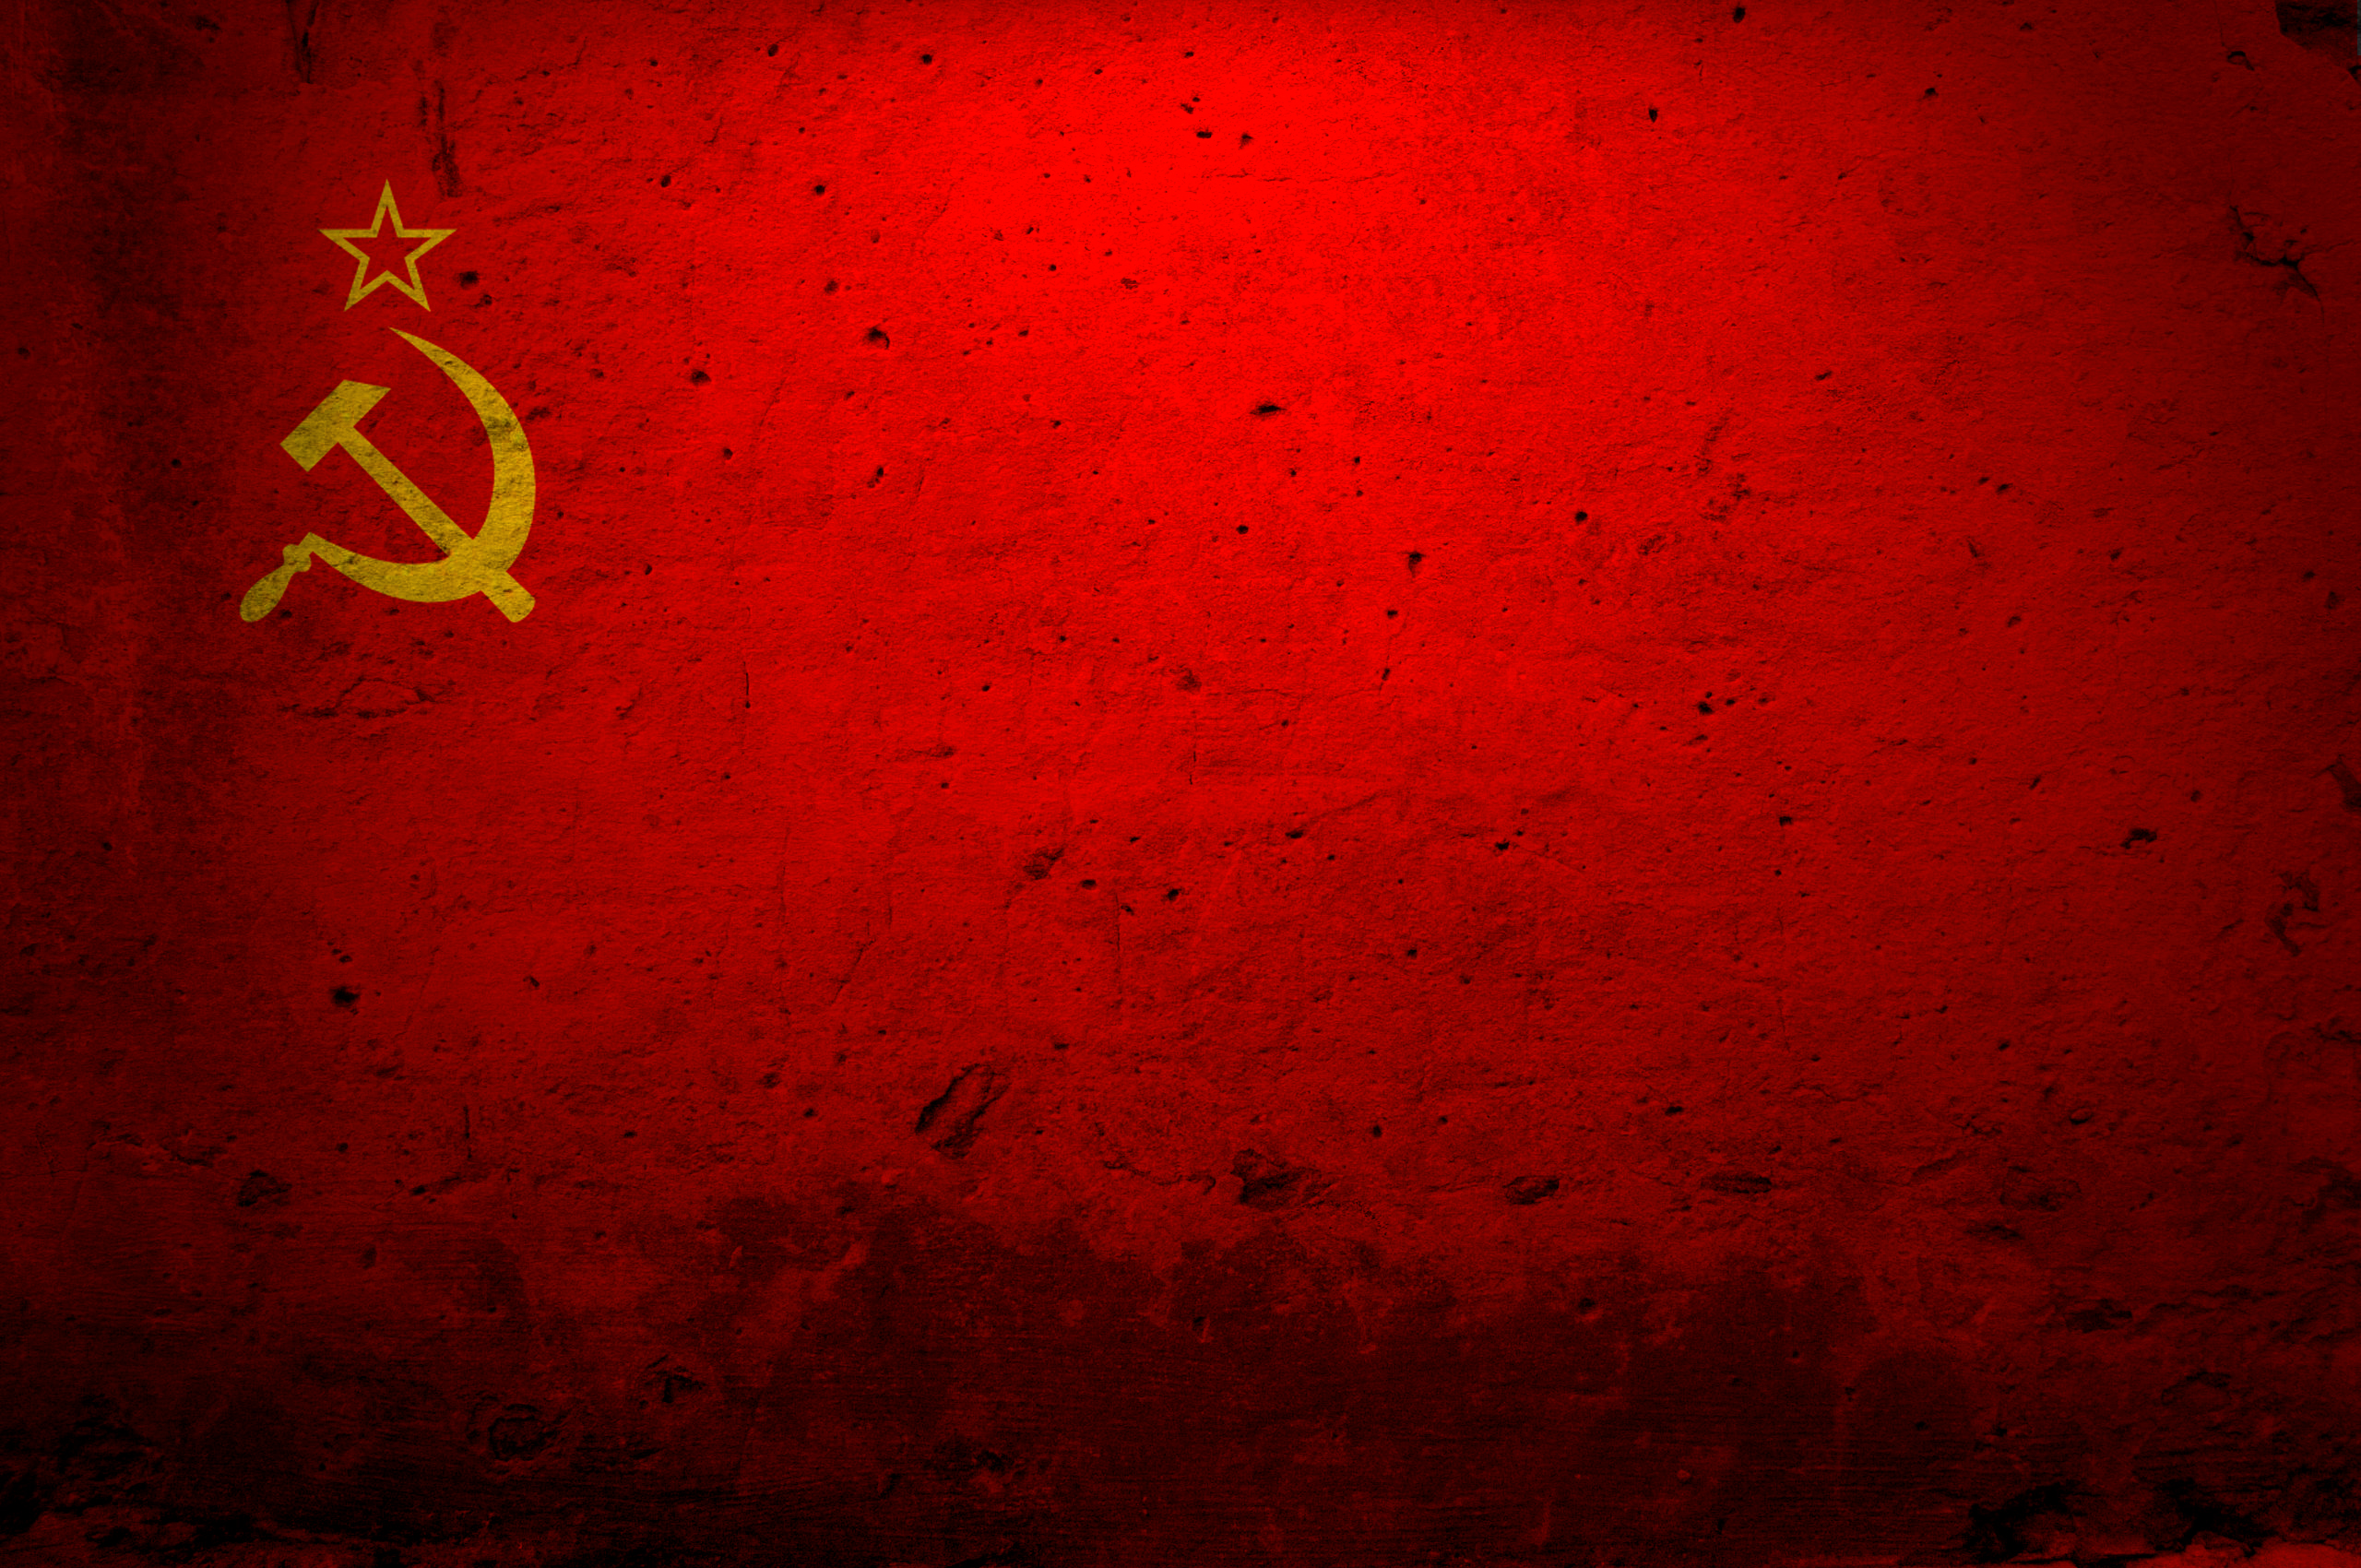 1 trotsky hd wallpapers background images wallpaper abyss - Ussr wallpaper ...